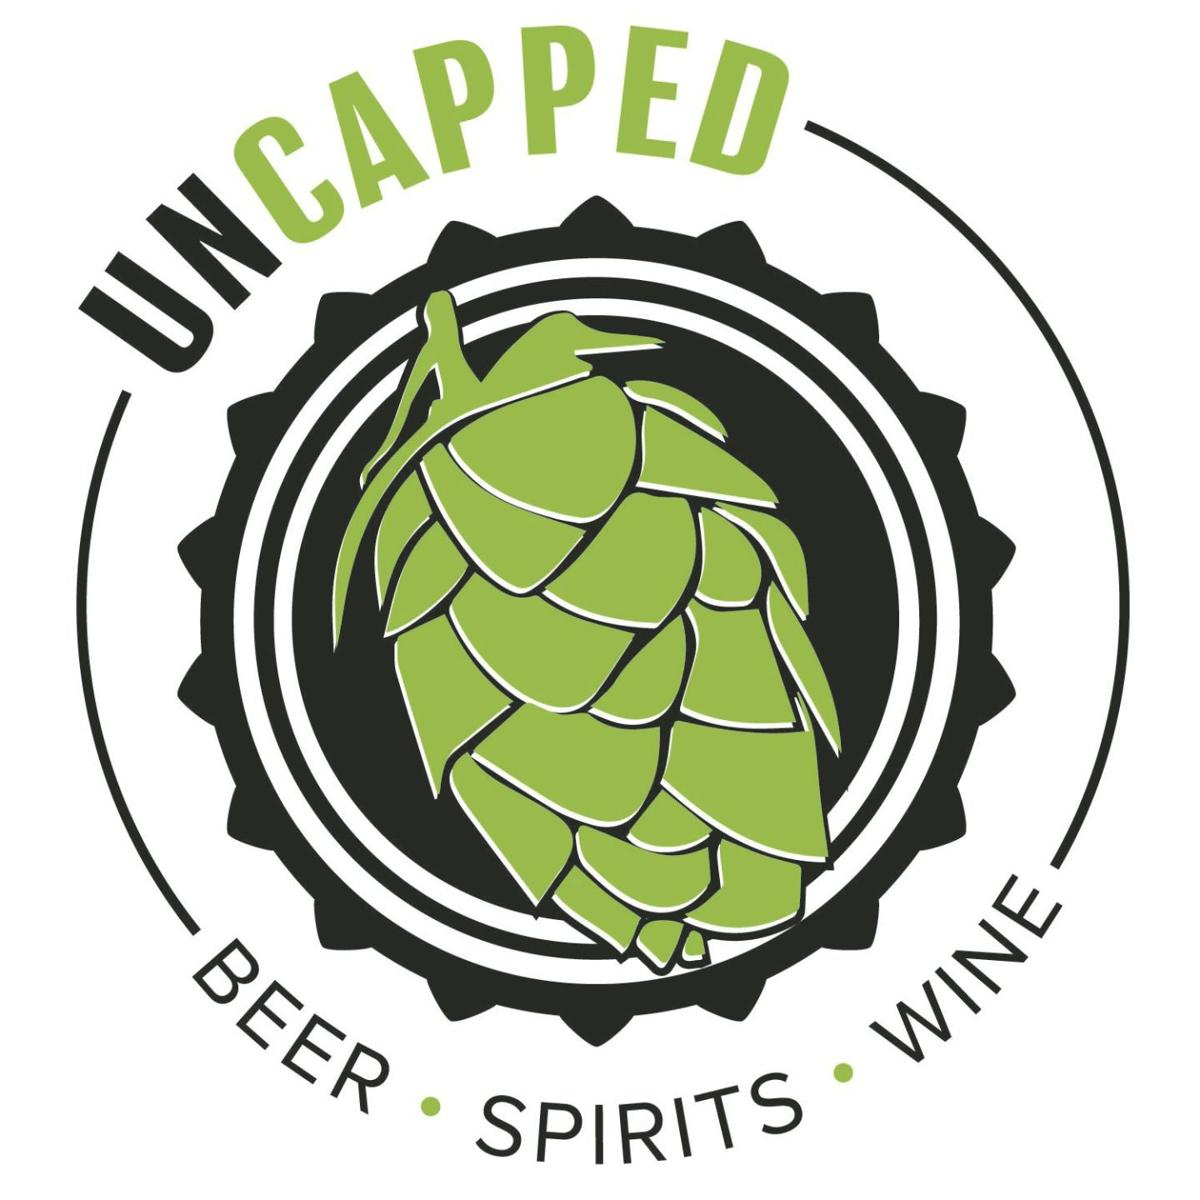 Uncapped: A look at what's on tap at local breweries